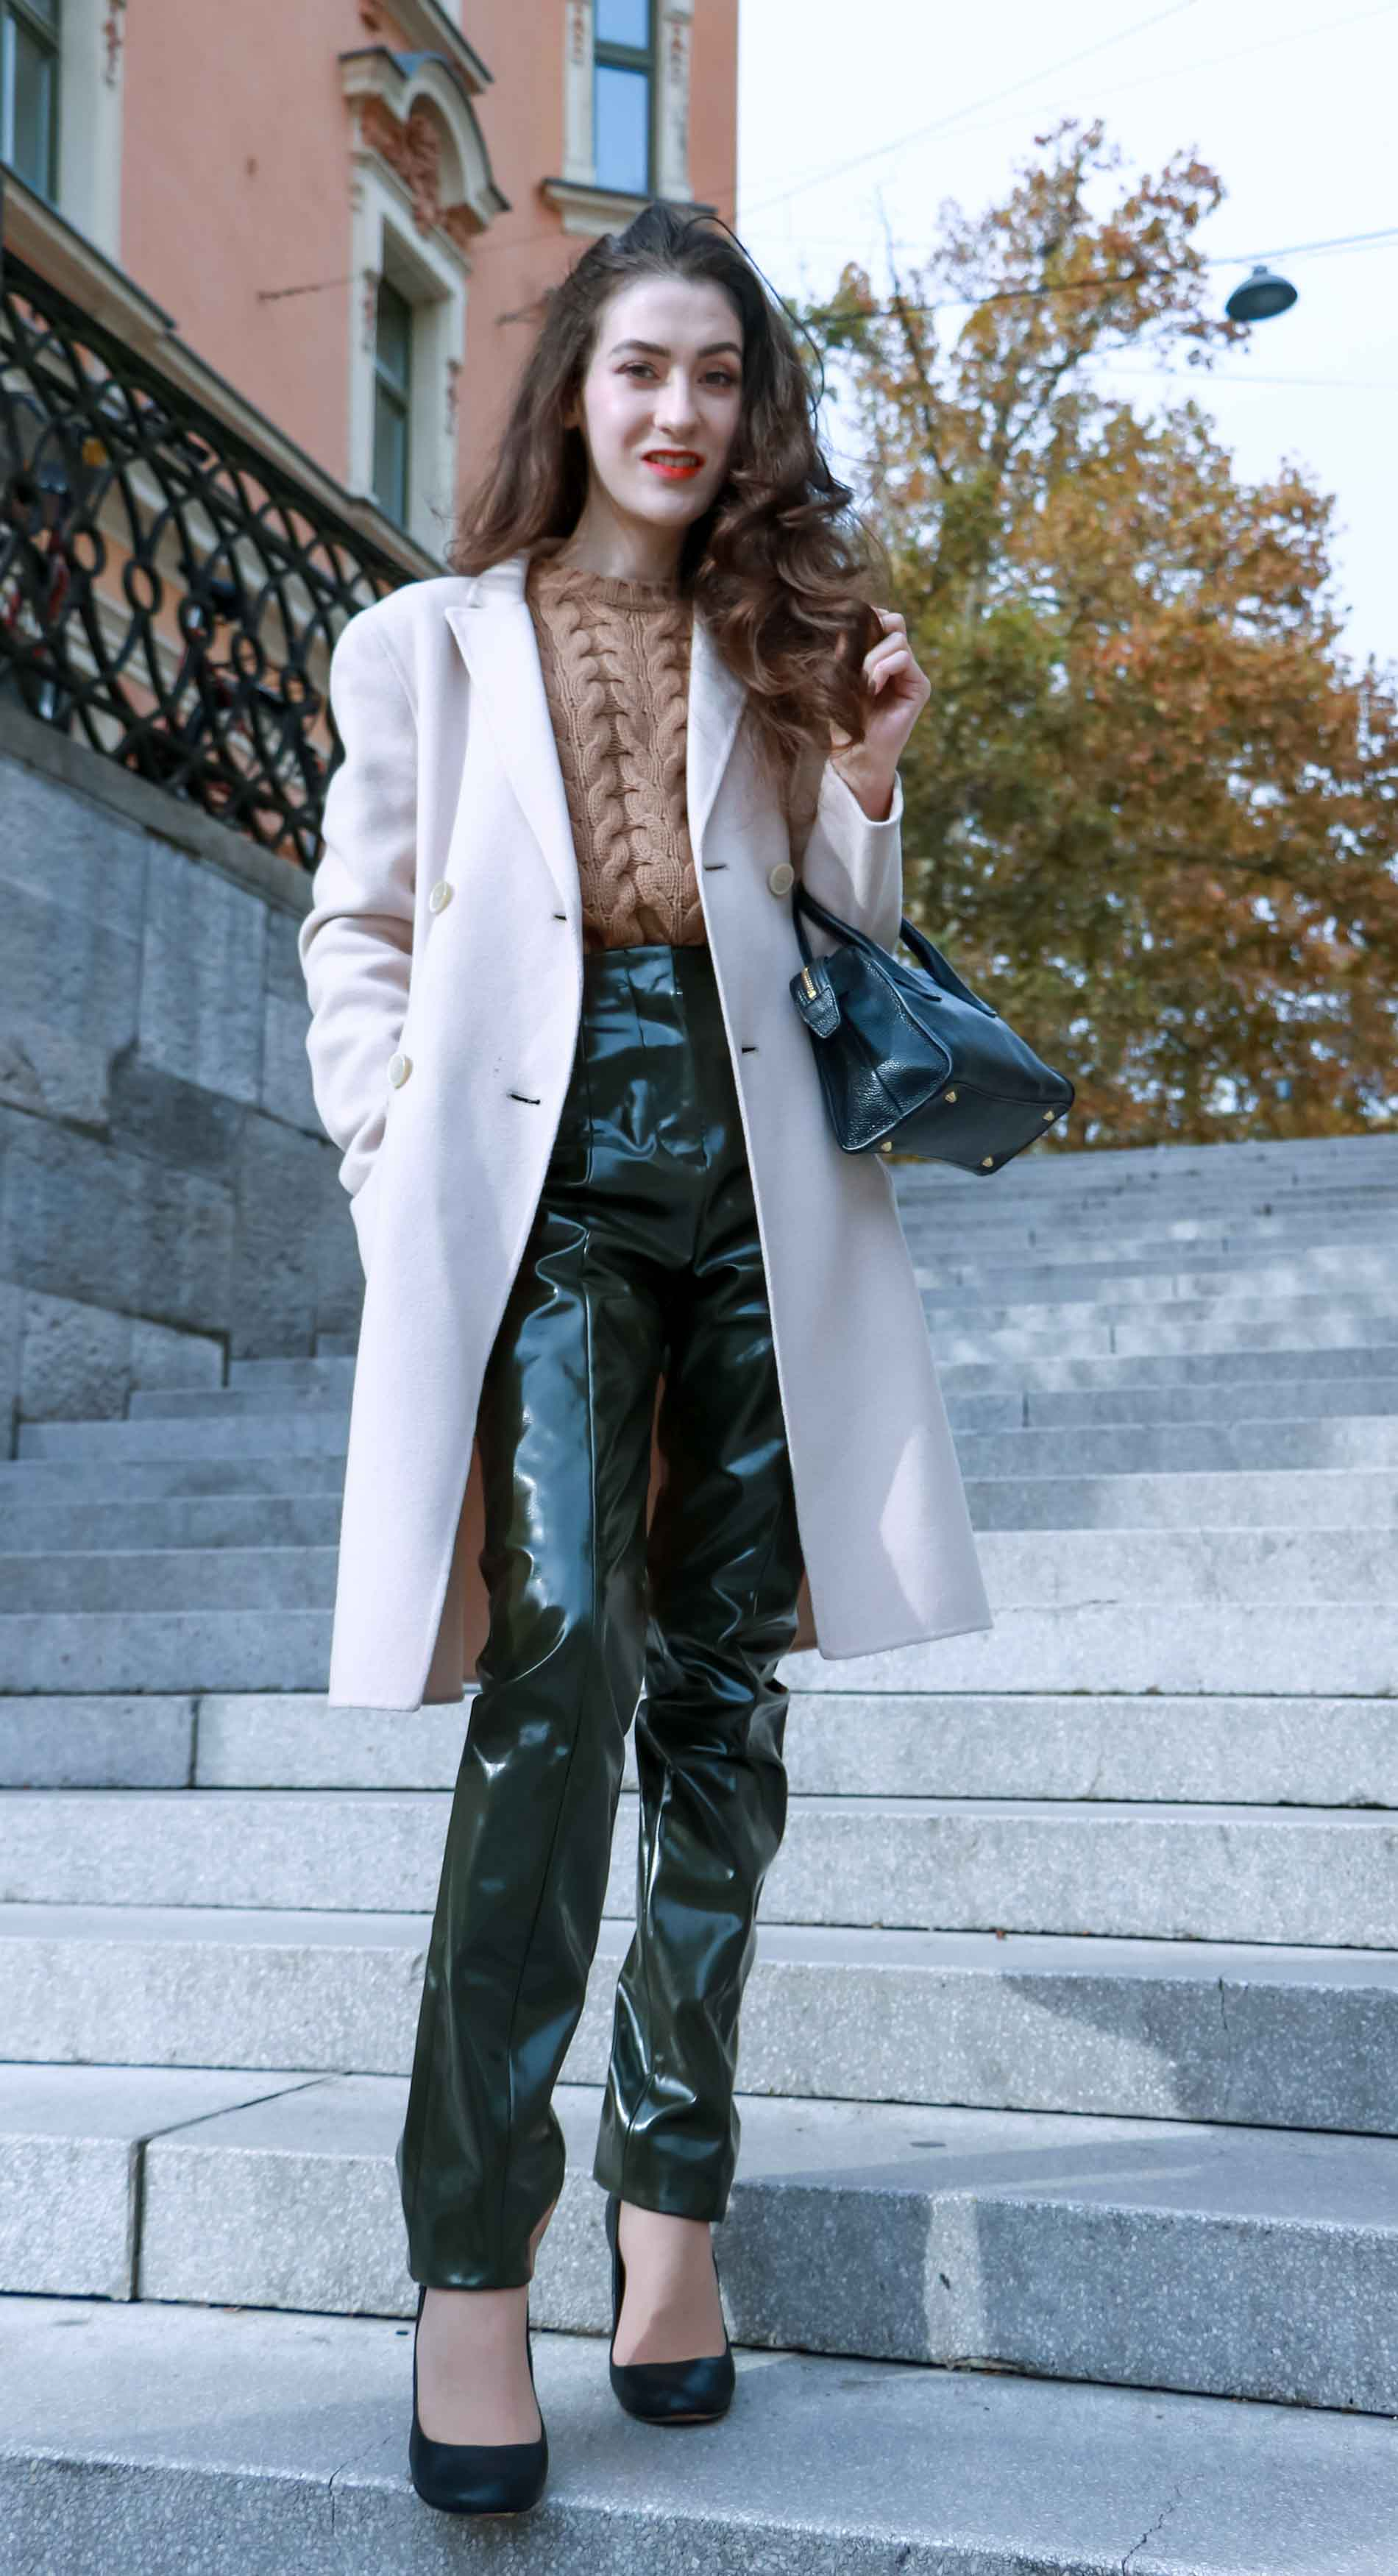 Fashion Blogger Veronika Lipar of Brunette from Wall Street wearing Acne Studios high-shine pants, Weekened Maxmara double breasted pastel coat, Max Mara camel cable knit sweater and black Aquazzura pumps as chic business outfit